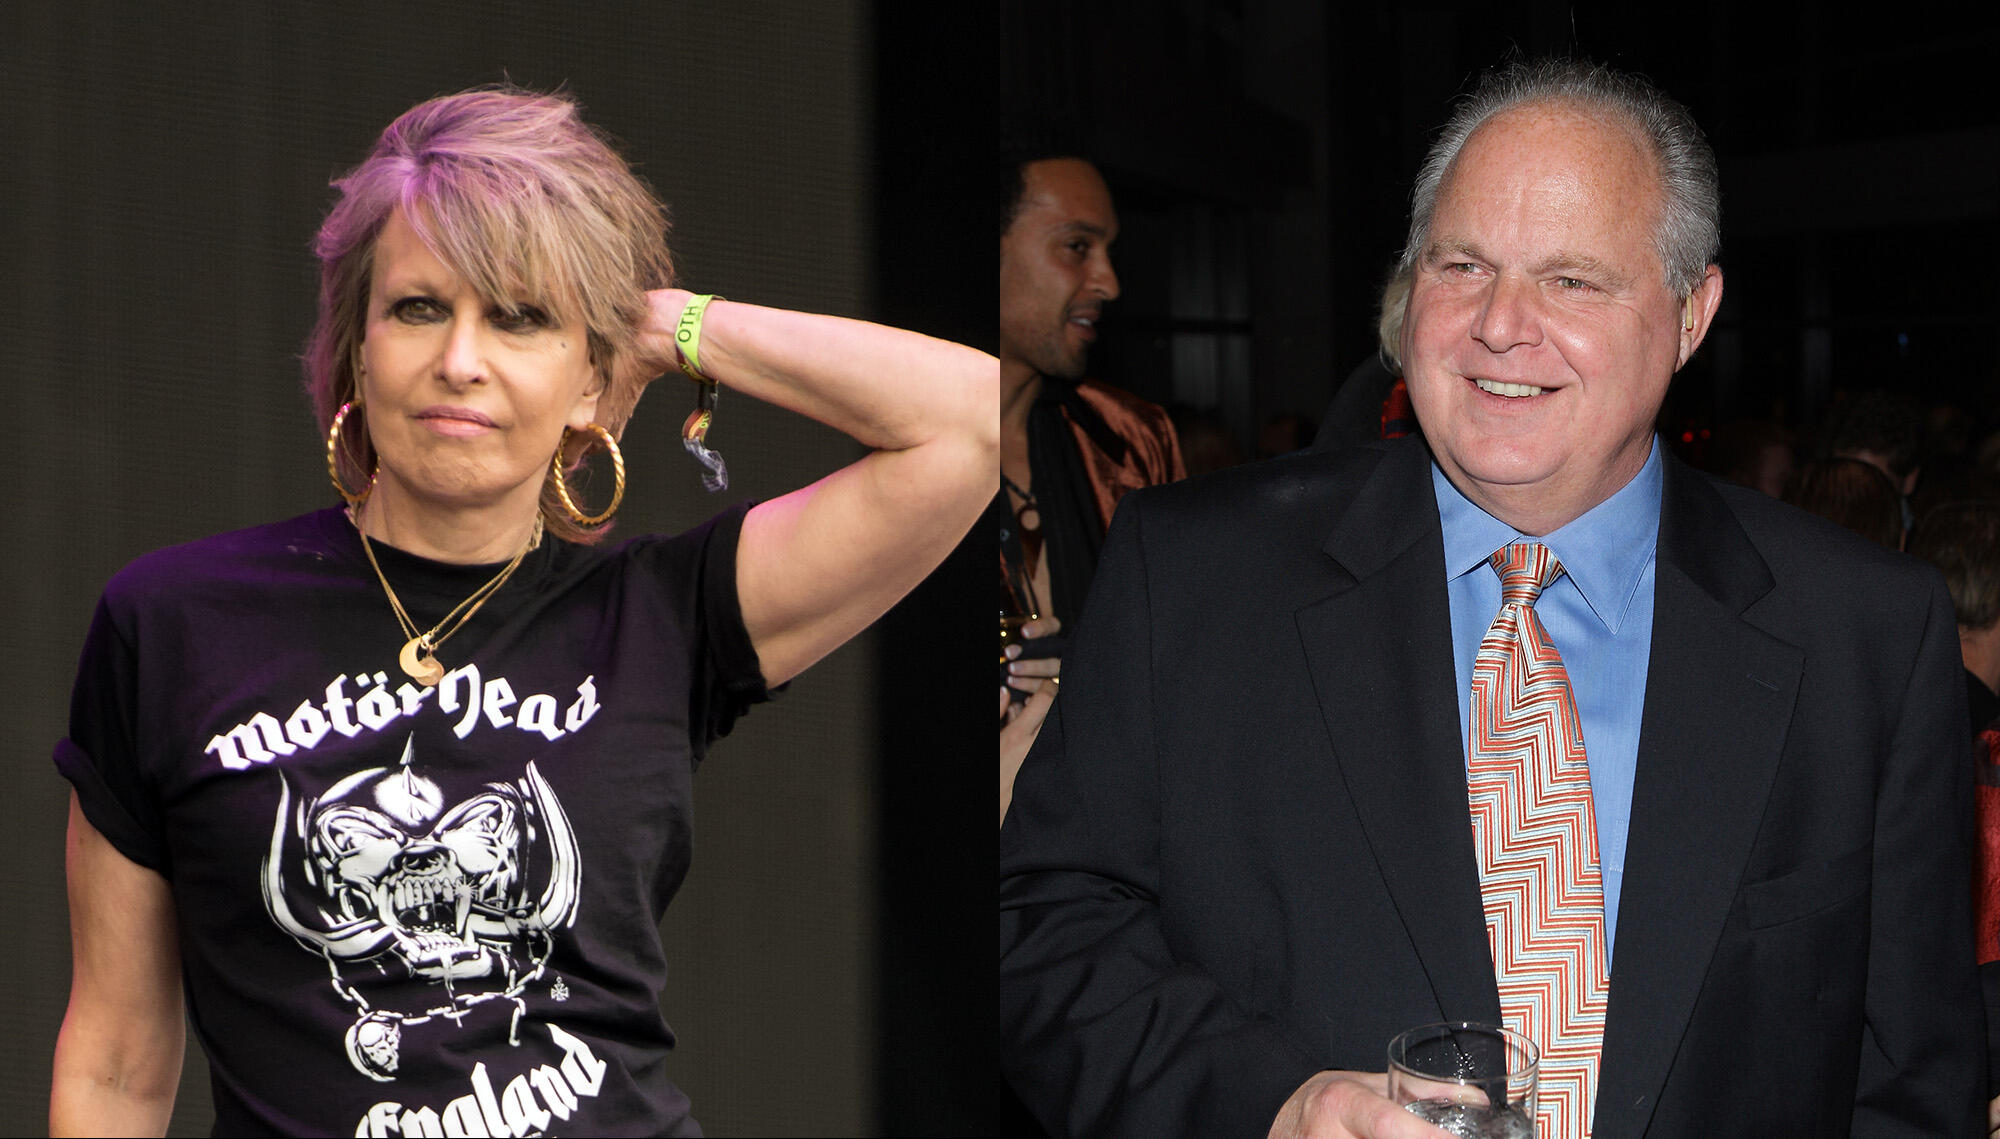 Chrissie Hynde Once Made Rush Limbaugh Donate $100,000 To PETA